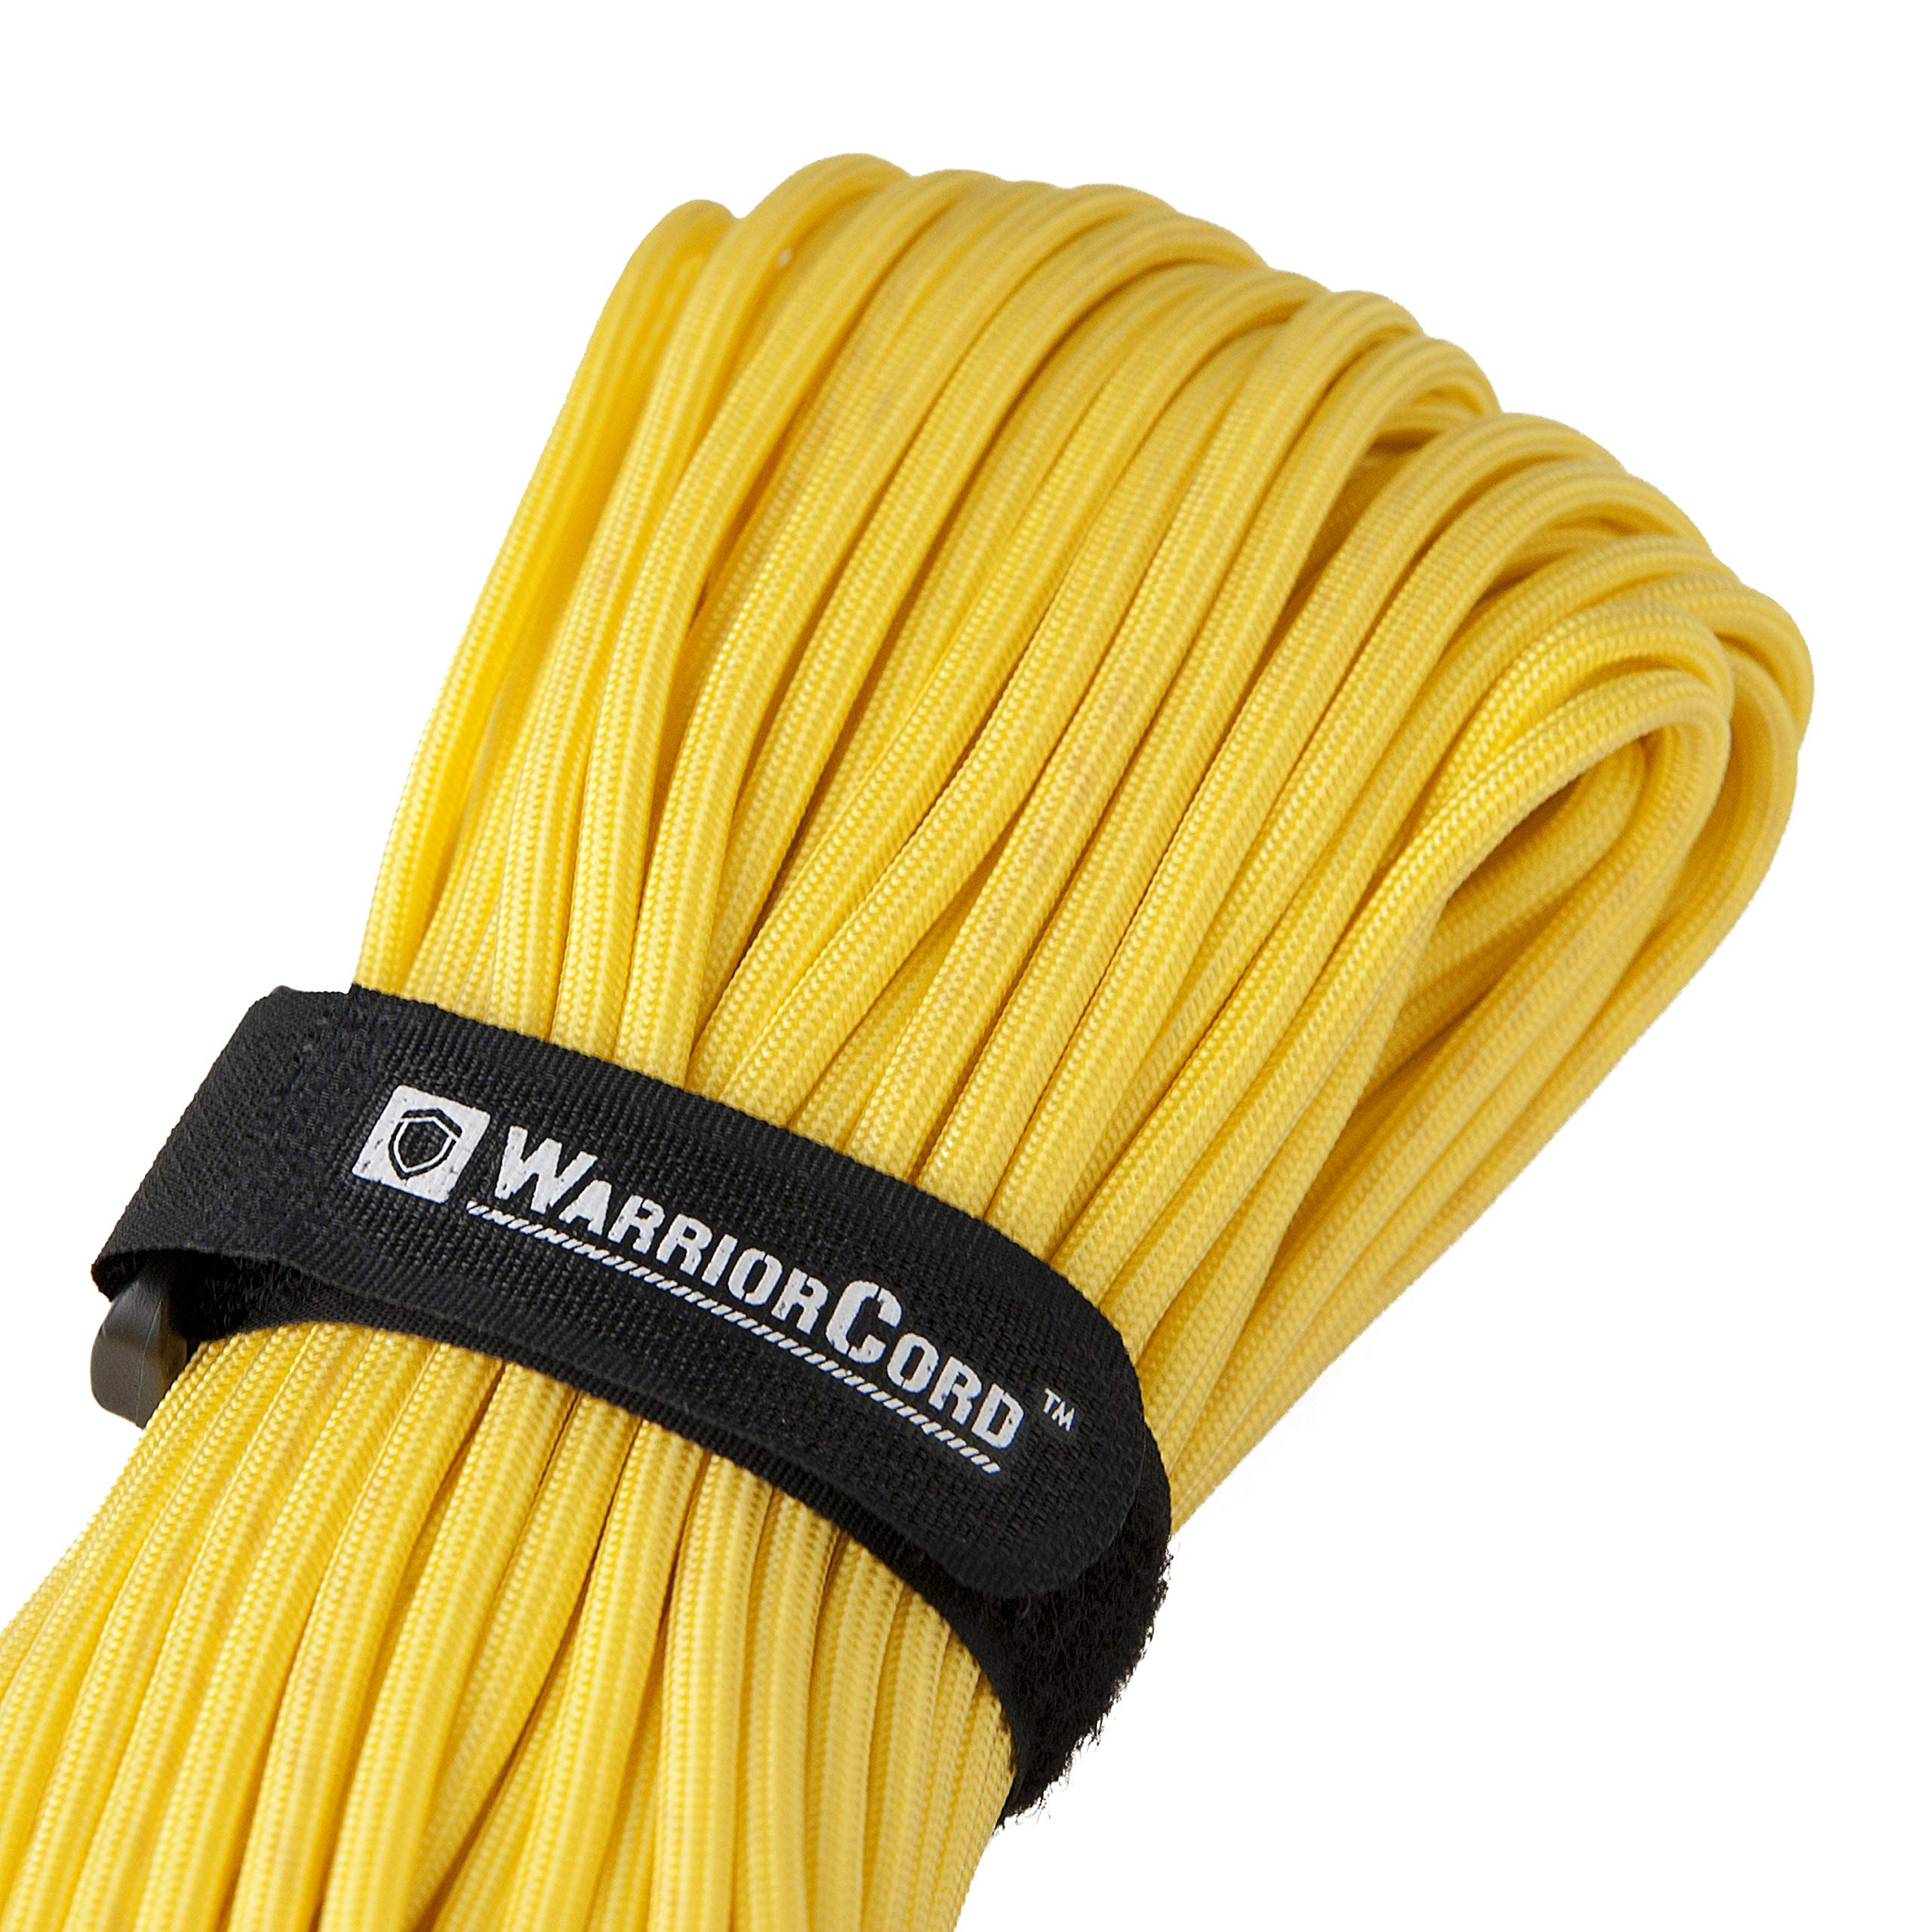 TITAN WarriorCord | YELLOW | 103 CONTINUOUS FEET | Exceeds Authentic MIL-C-5040, Type III 550 Paracord Standards. 7 Strand, 5/32'' (4mm) Diameter, Military Parachute Cord.